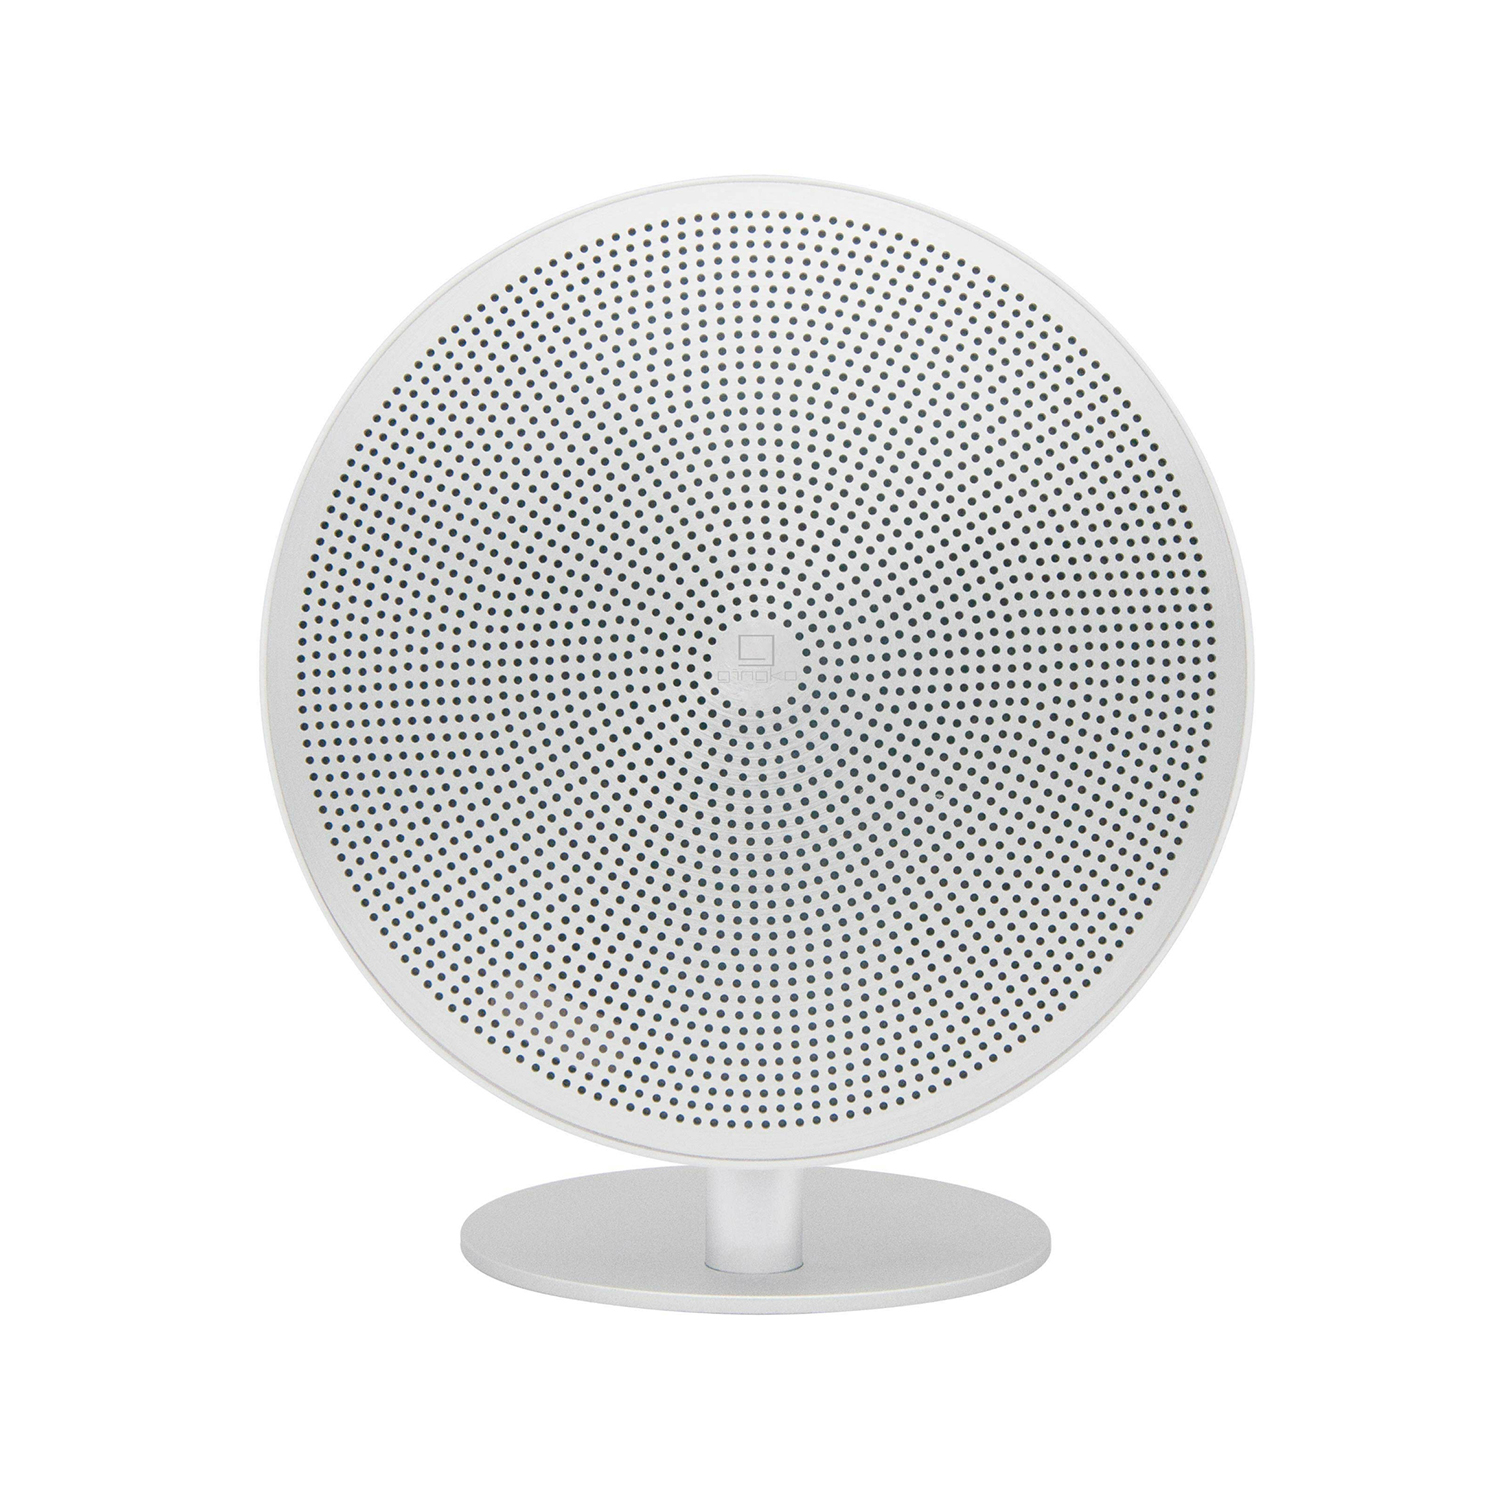 Gingko – Mini Halo One Touch Control Bluetooth Speaker in Gift Box – White